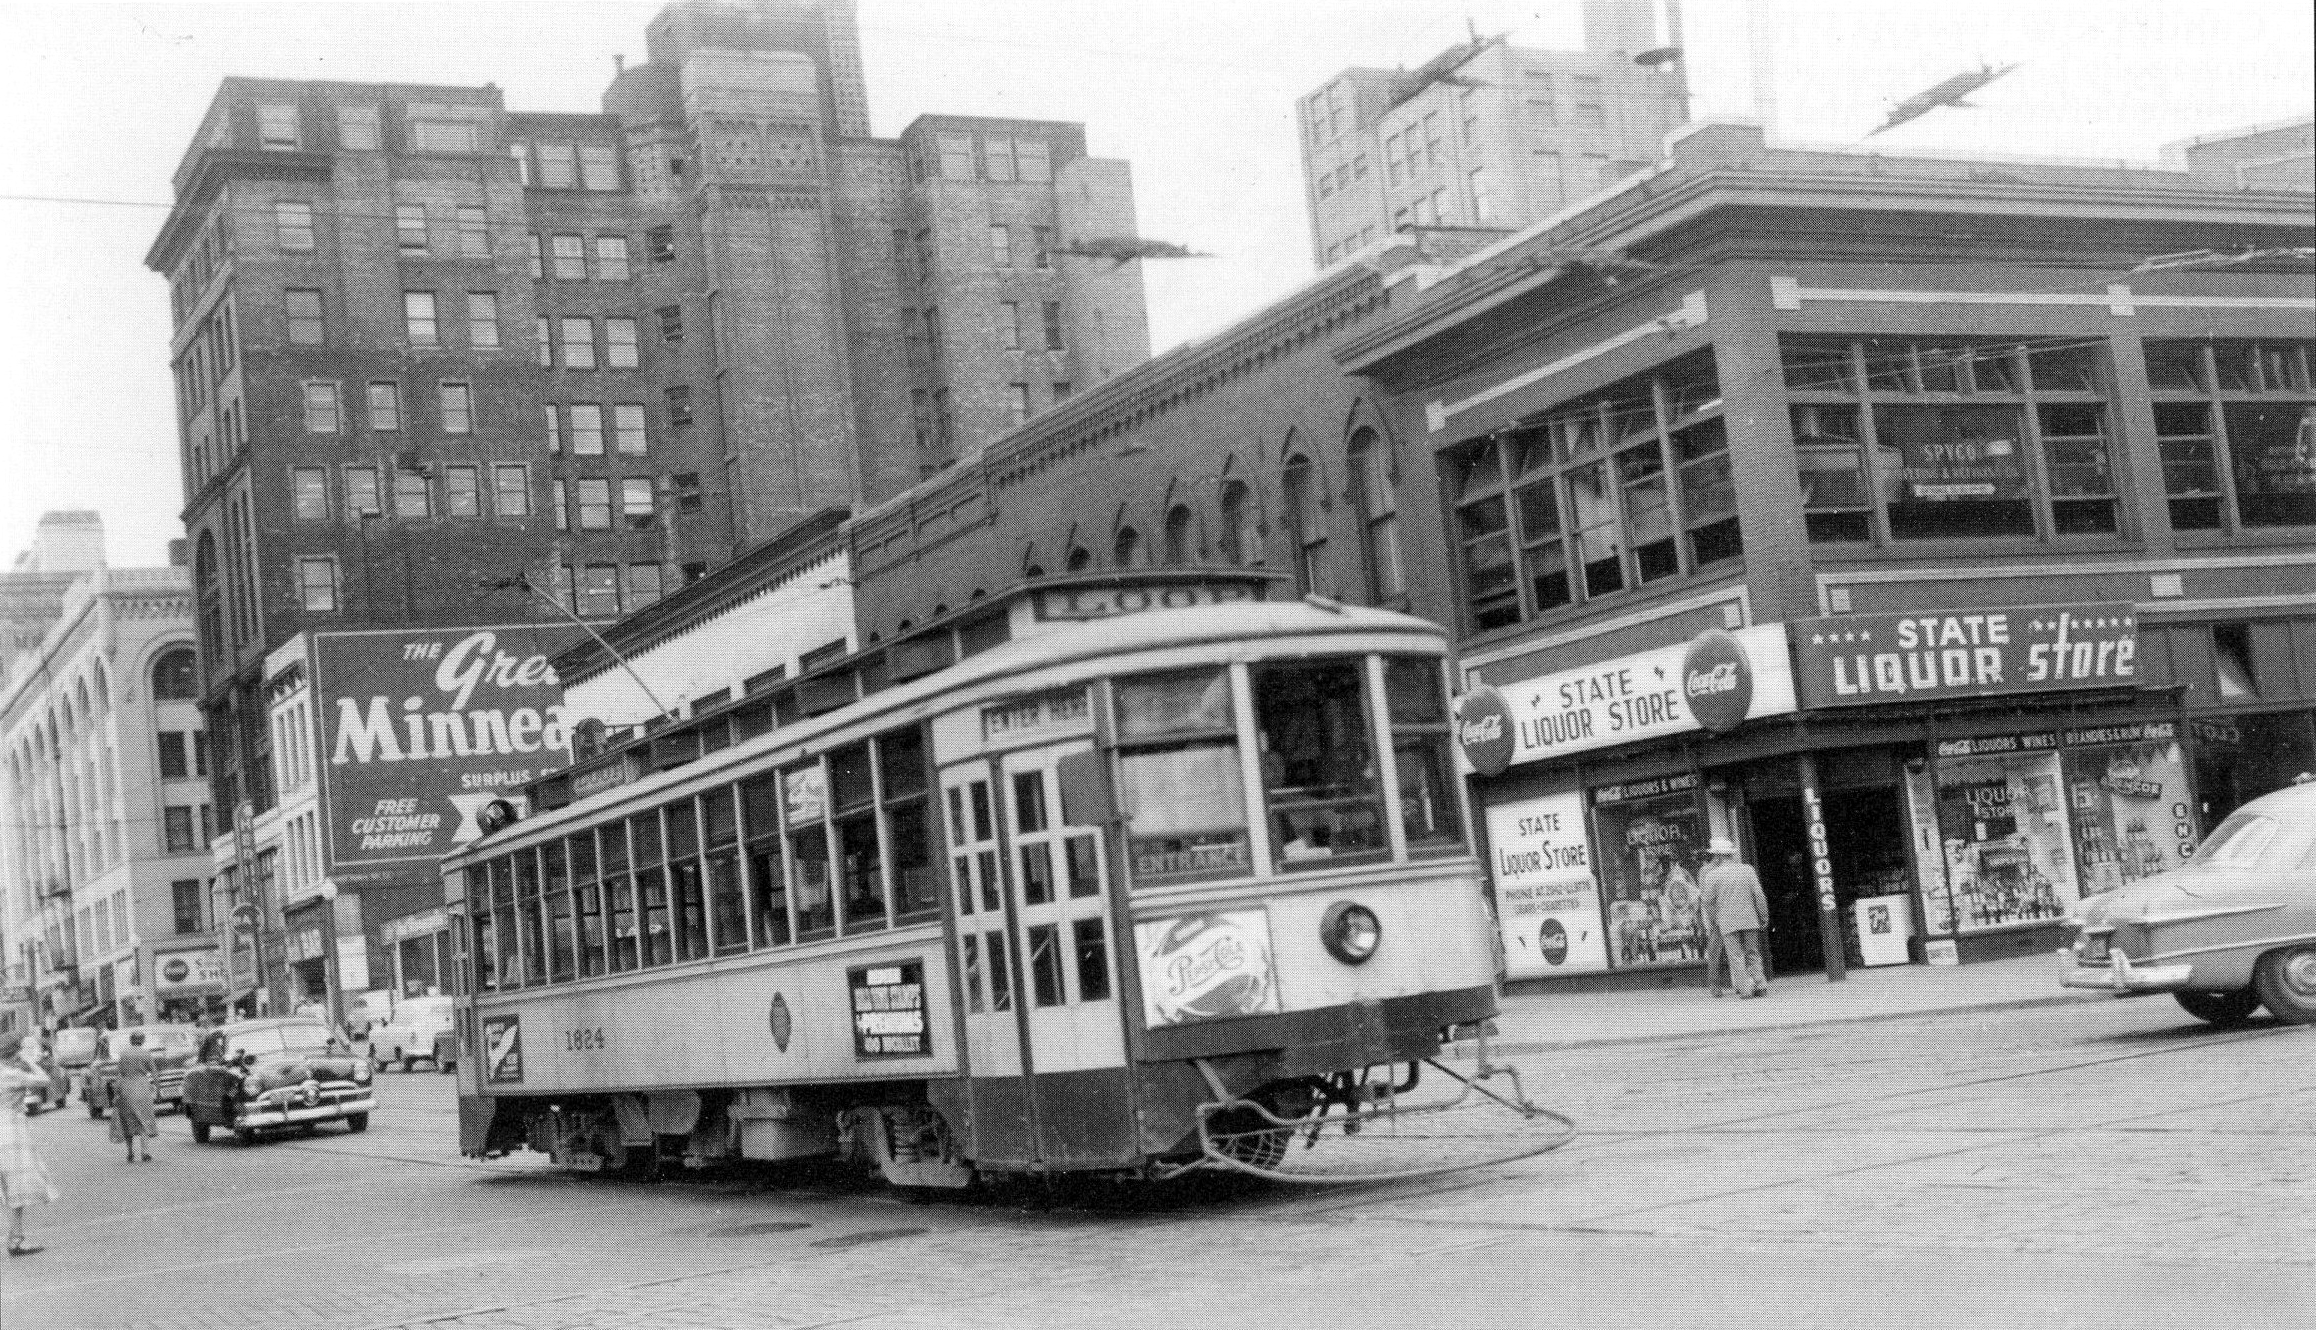 A streetcar with a 'Loop' destination sign travels downtown in 1953.